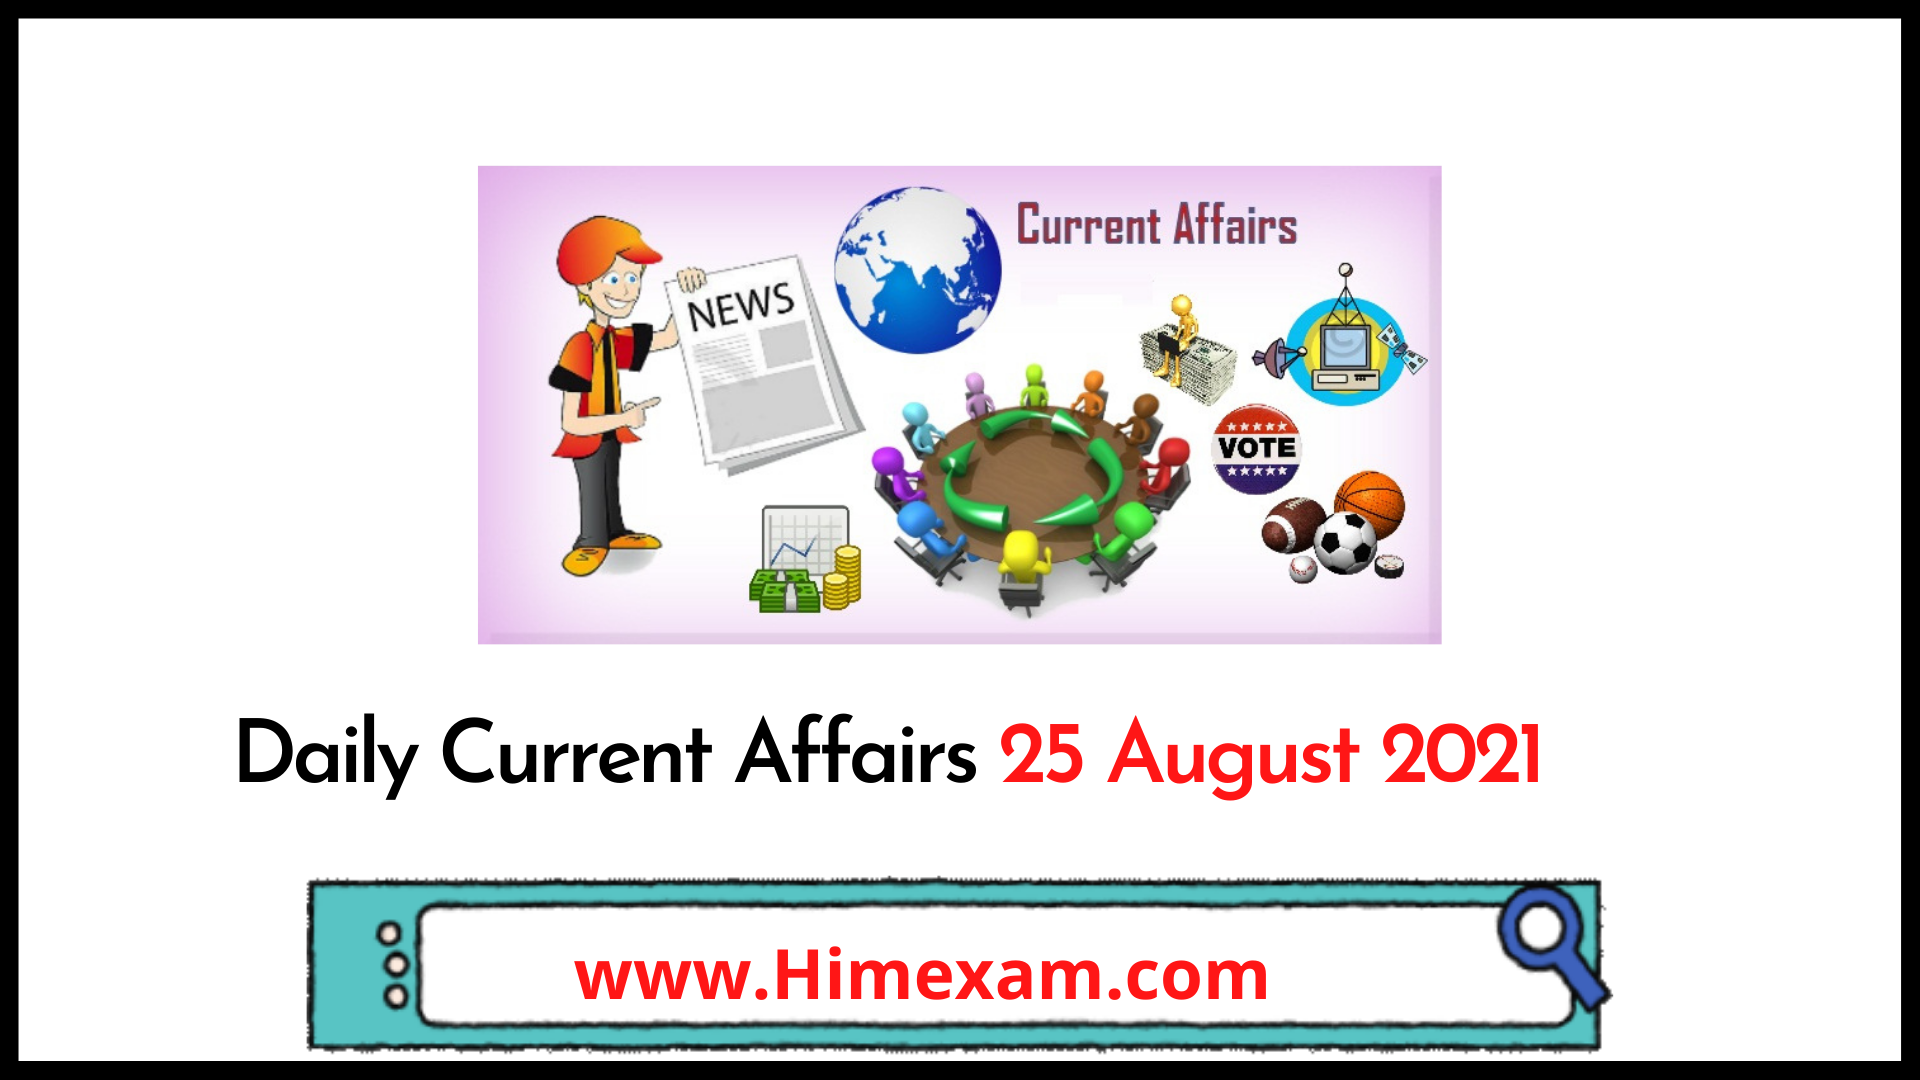 Daily Current Affairs 25 August 2021